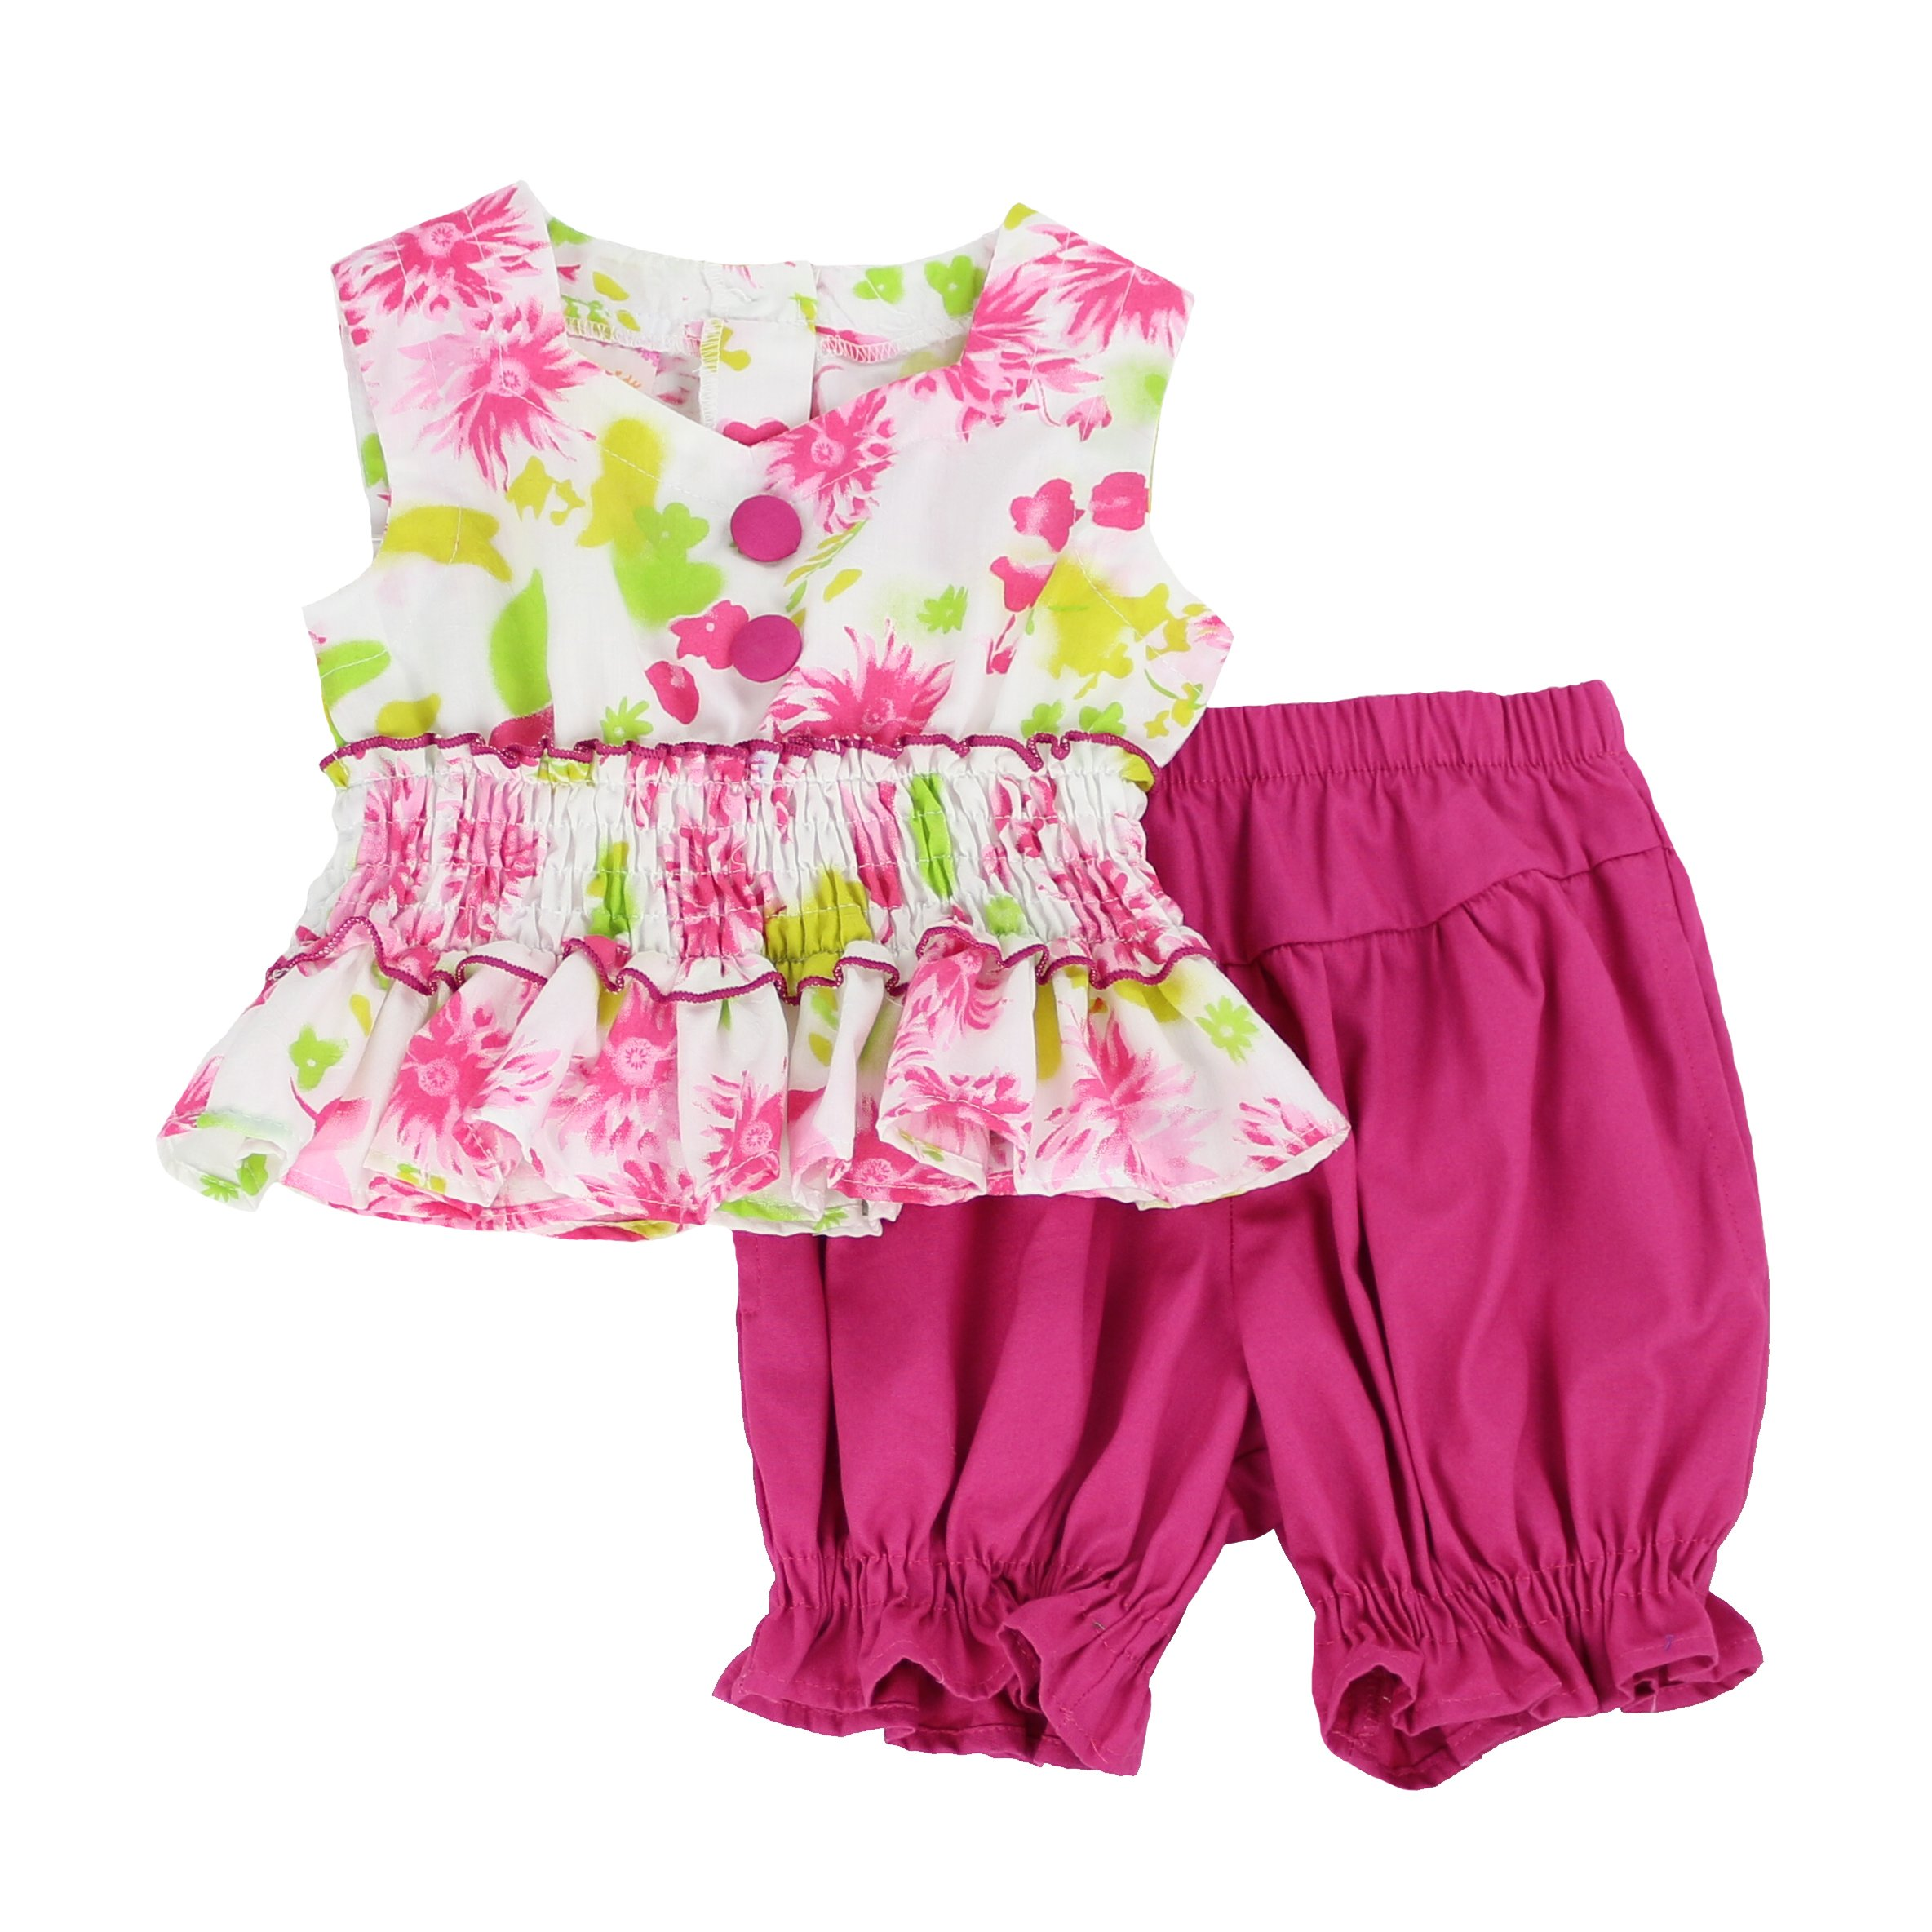 LELEFORKIDS - Toddlers and Girls Laura Lynn Ruffled Bloomer Short Set in Hot Pink 6